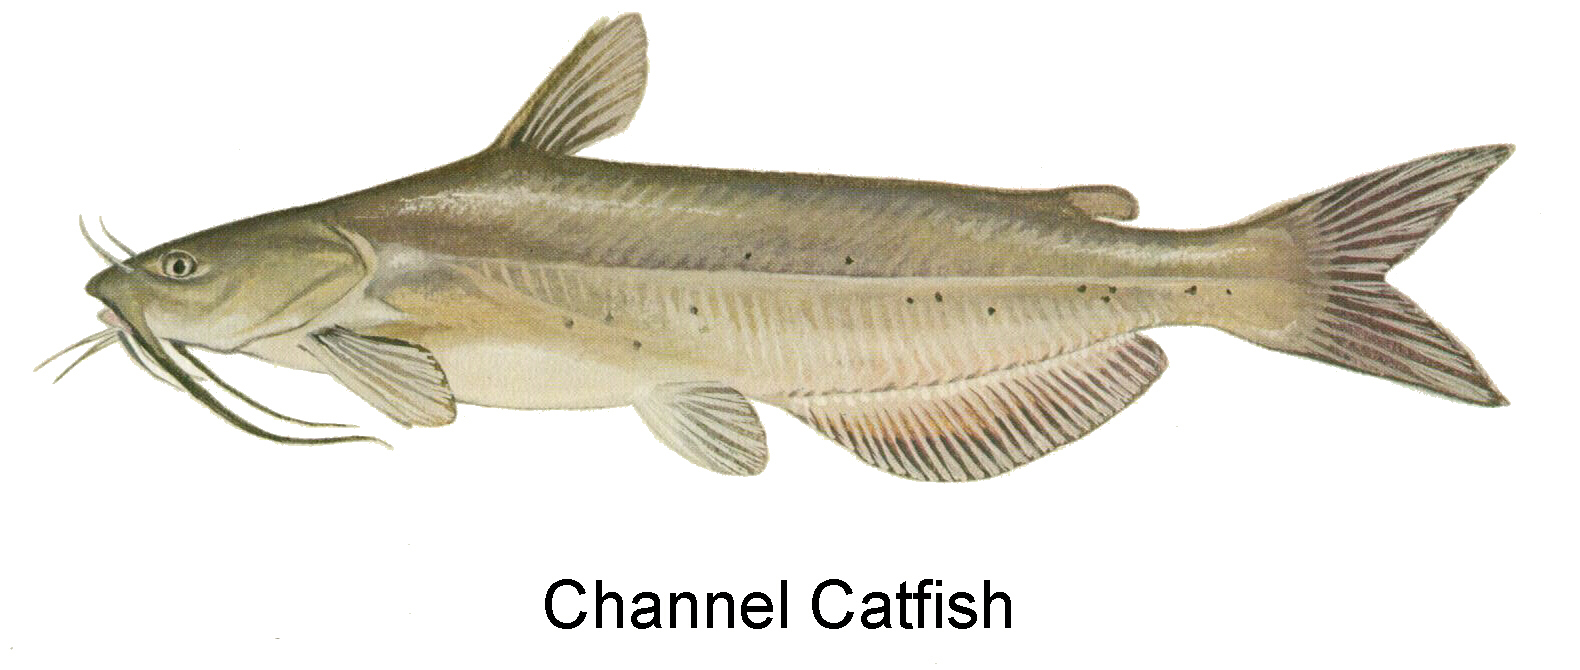 Indiana outside clip art. Catfish clipart channel catfish